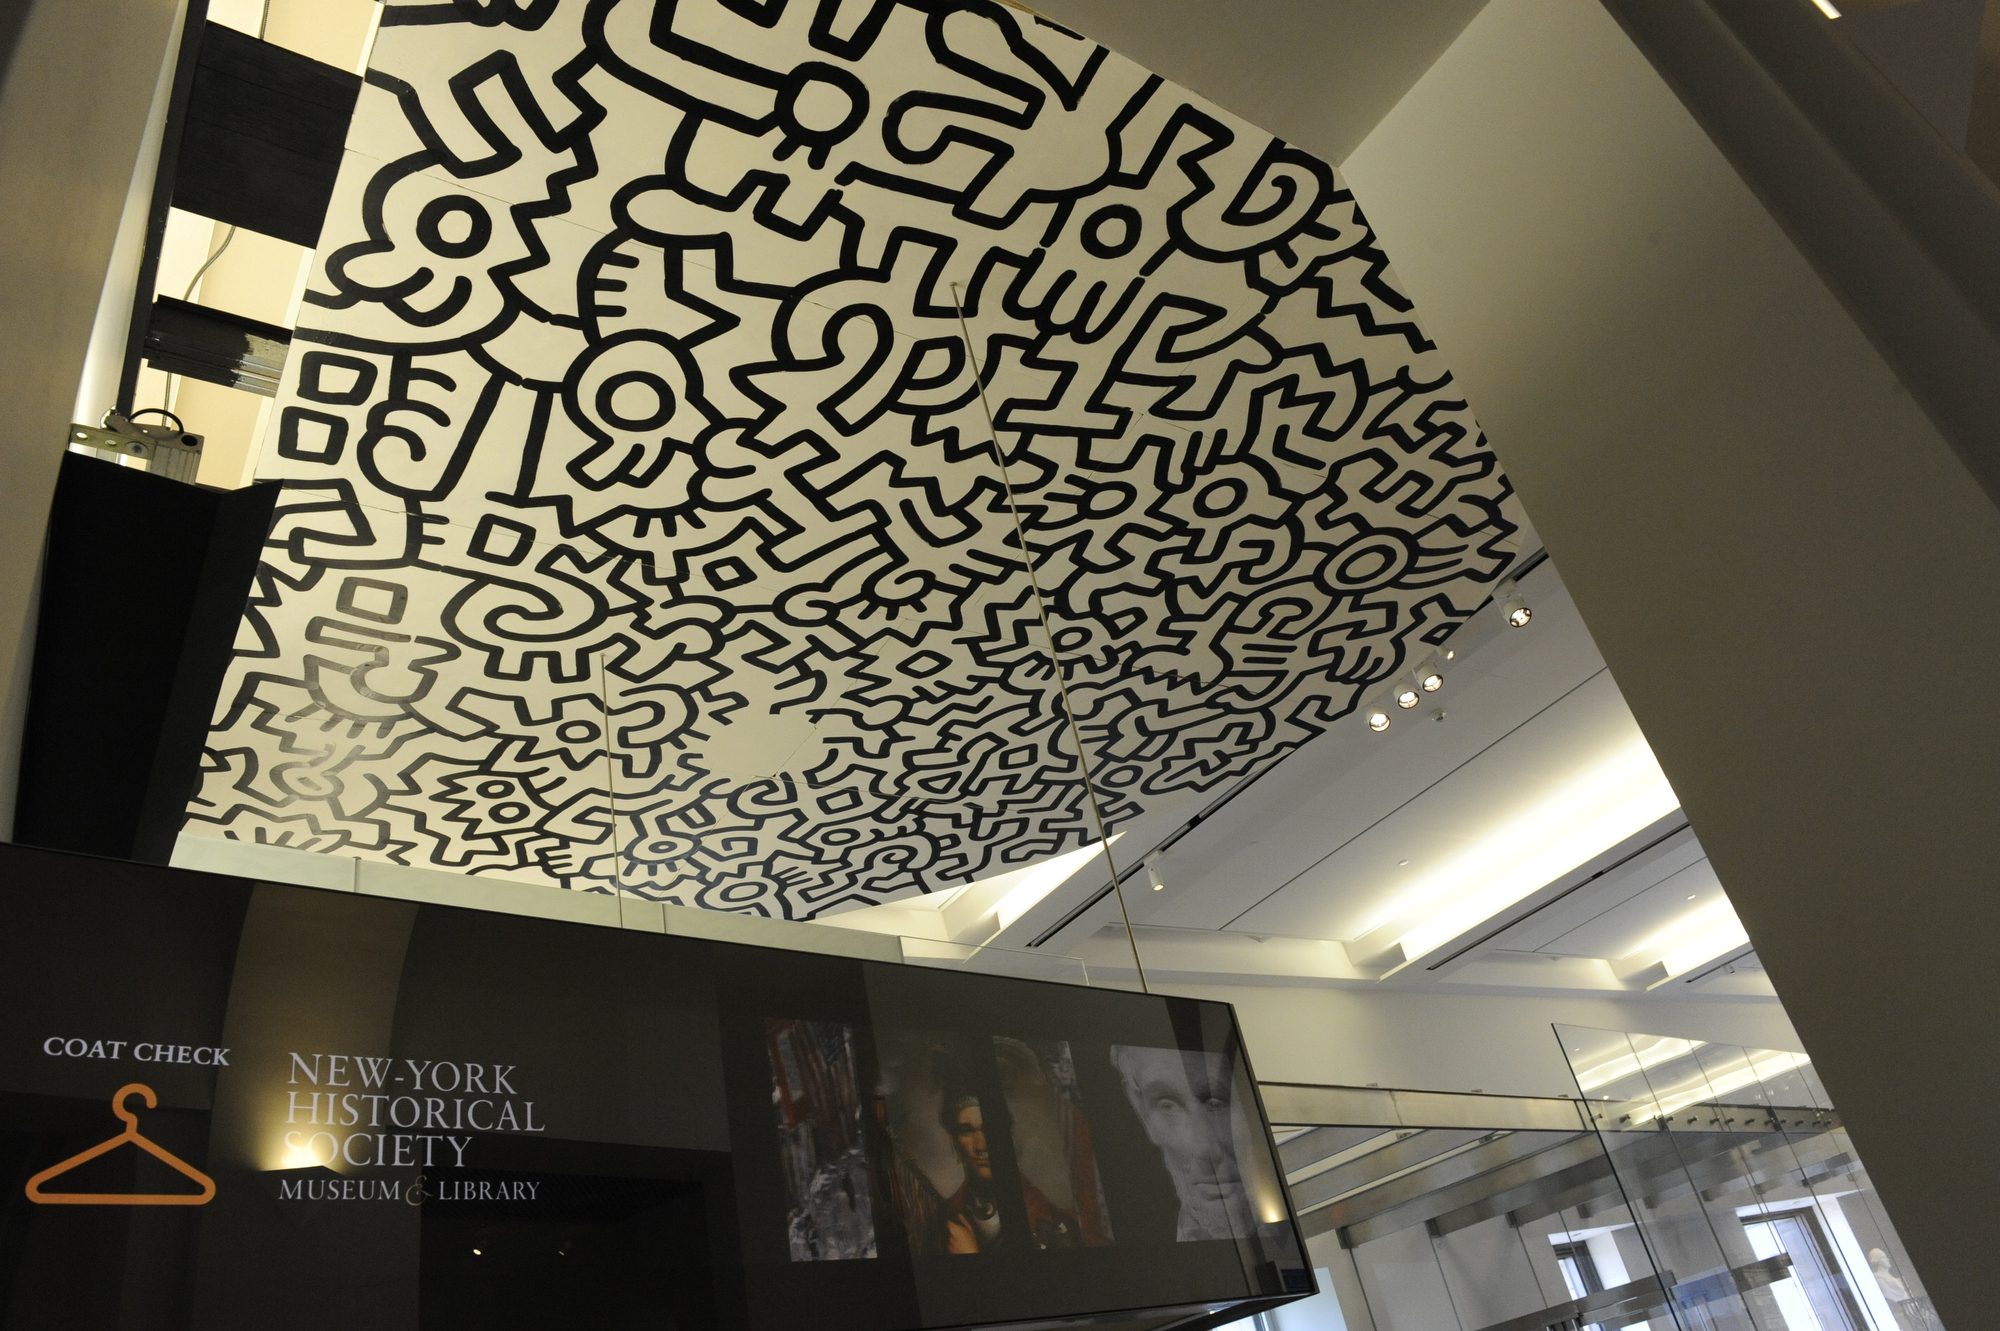 Keith Haring pop shop ceiling